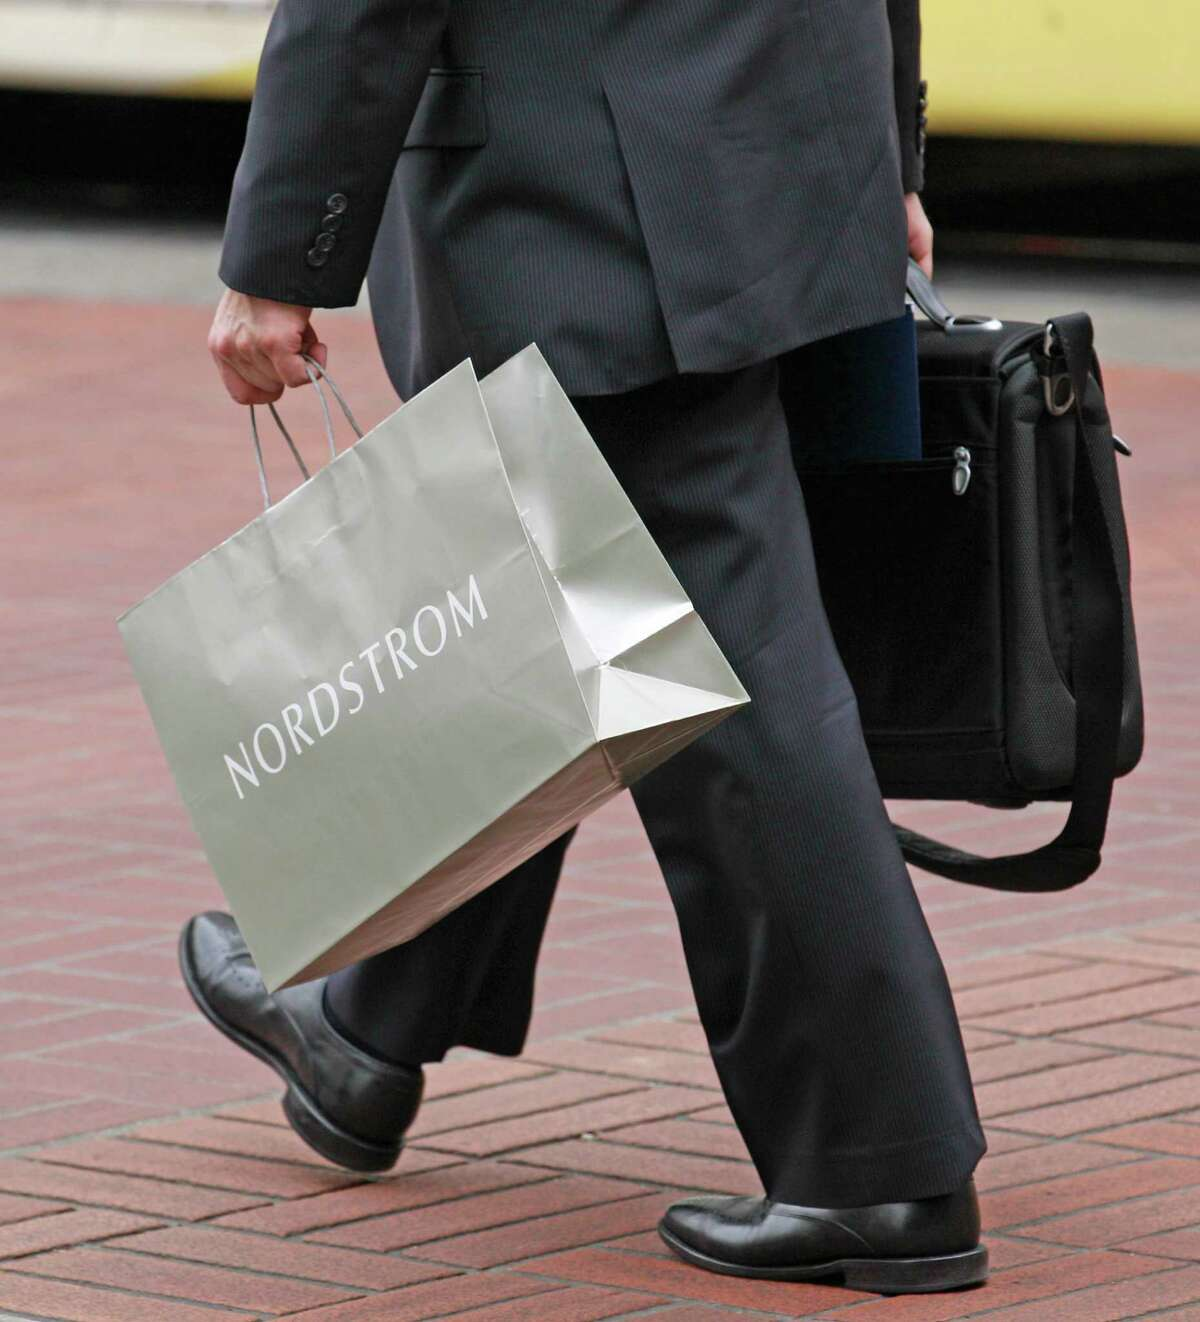 Nordstrom has stores in The Galleria and The Woodlands and six Nordstrom Rack locations across Houston.